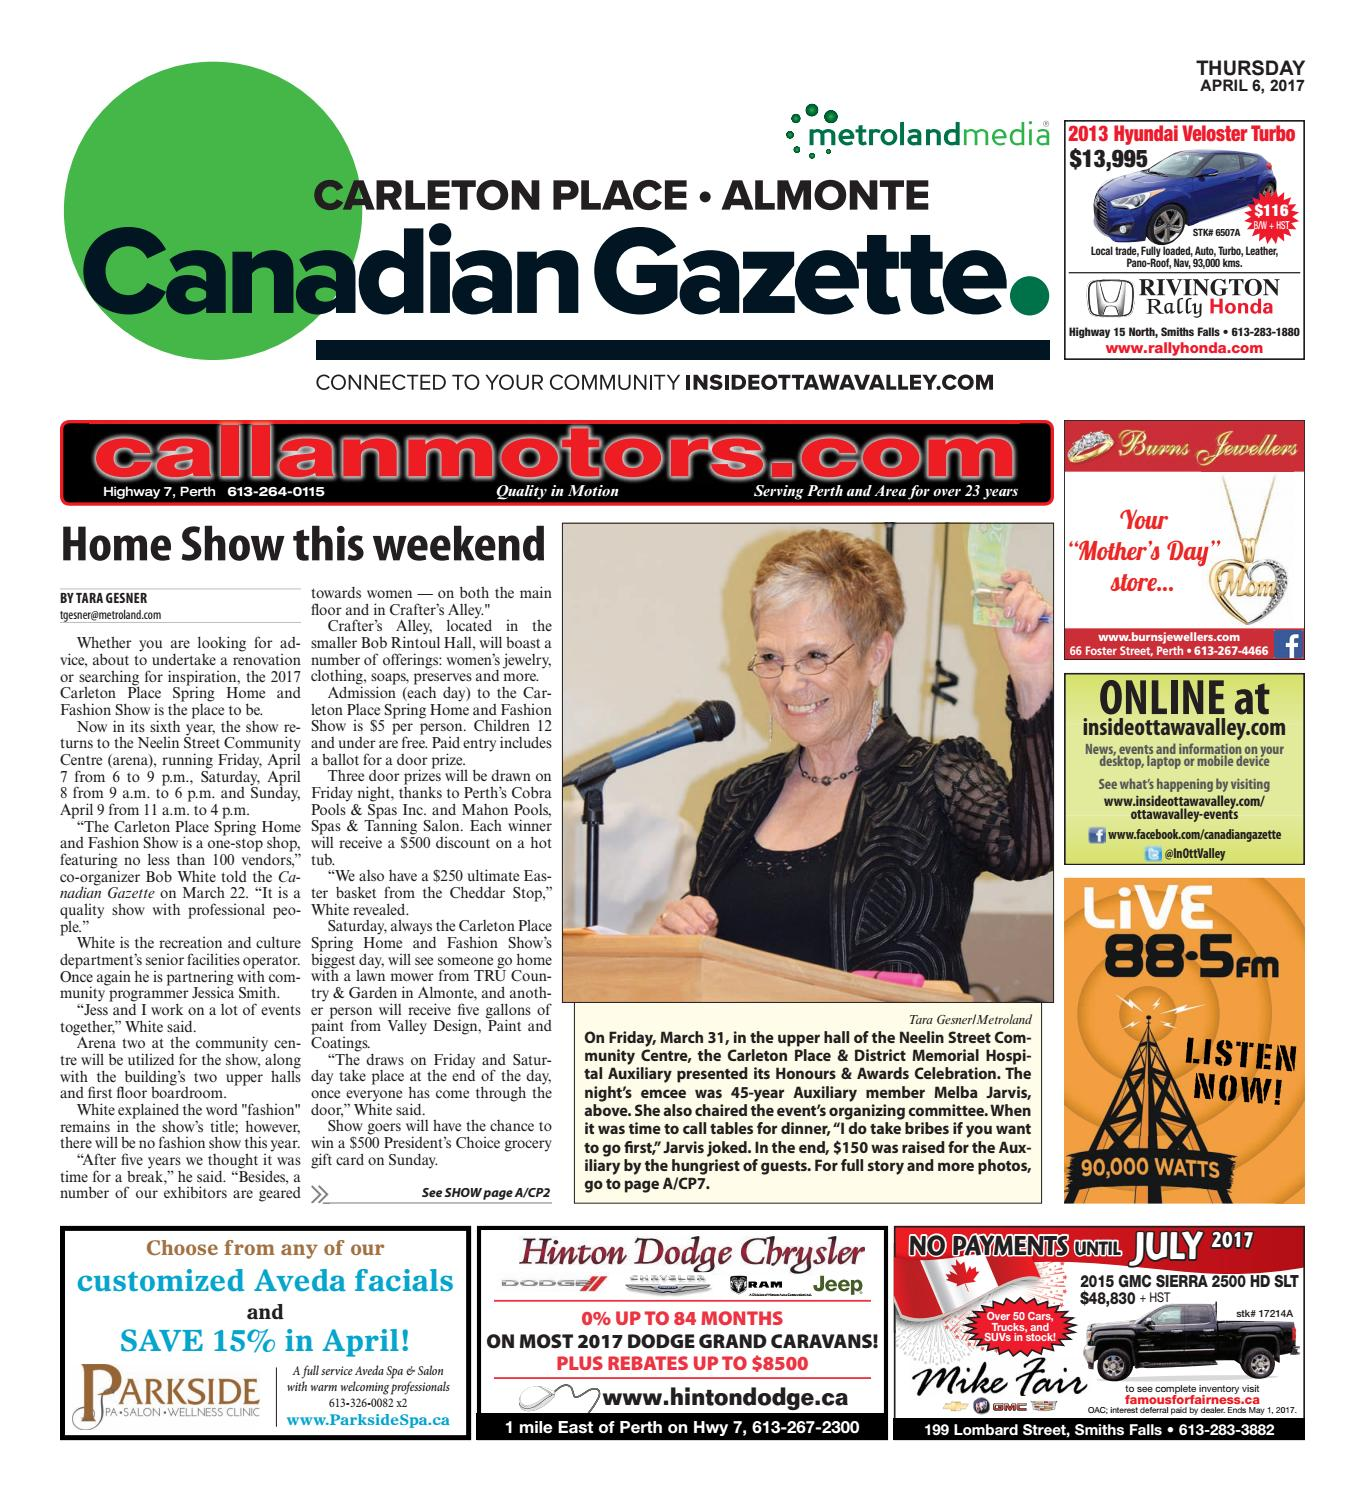 Almontecarletonplace040617 by metroland east almonte carleton almontecarletonplace040617 by metroland east almonte carleton place canadian gazette issuu fandeluxe Images